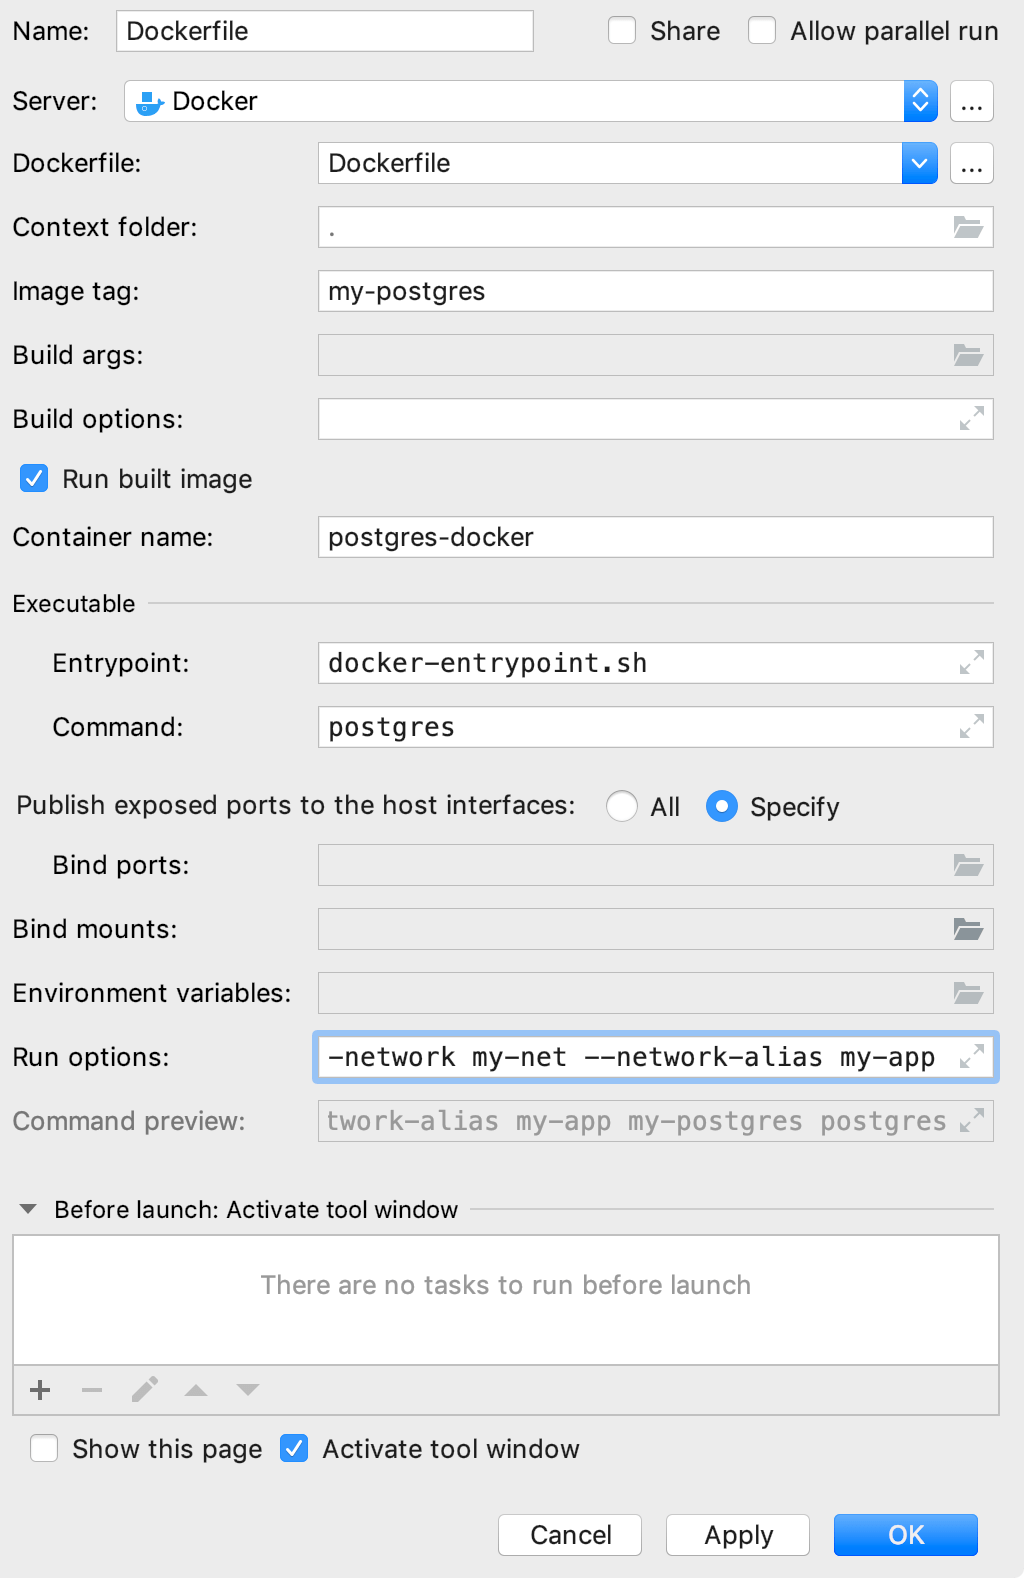 The Edit Deployment Configuration dialog with command-line options